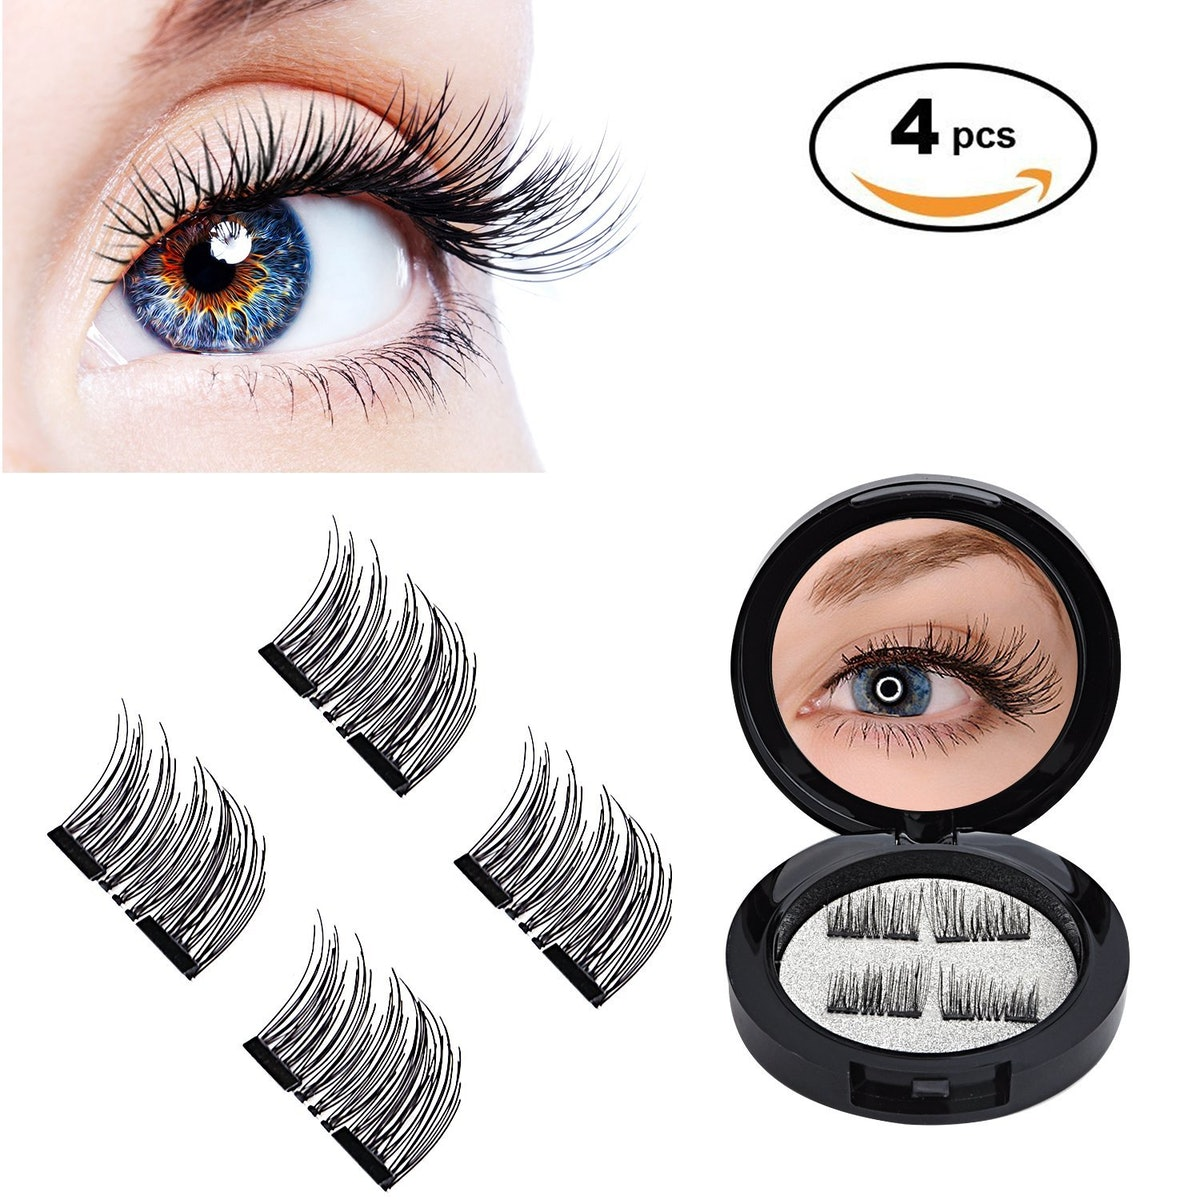 3D Magnetic Eyelashes by Websun